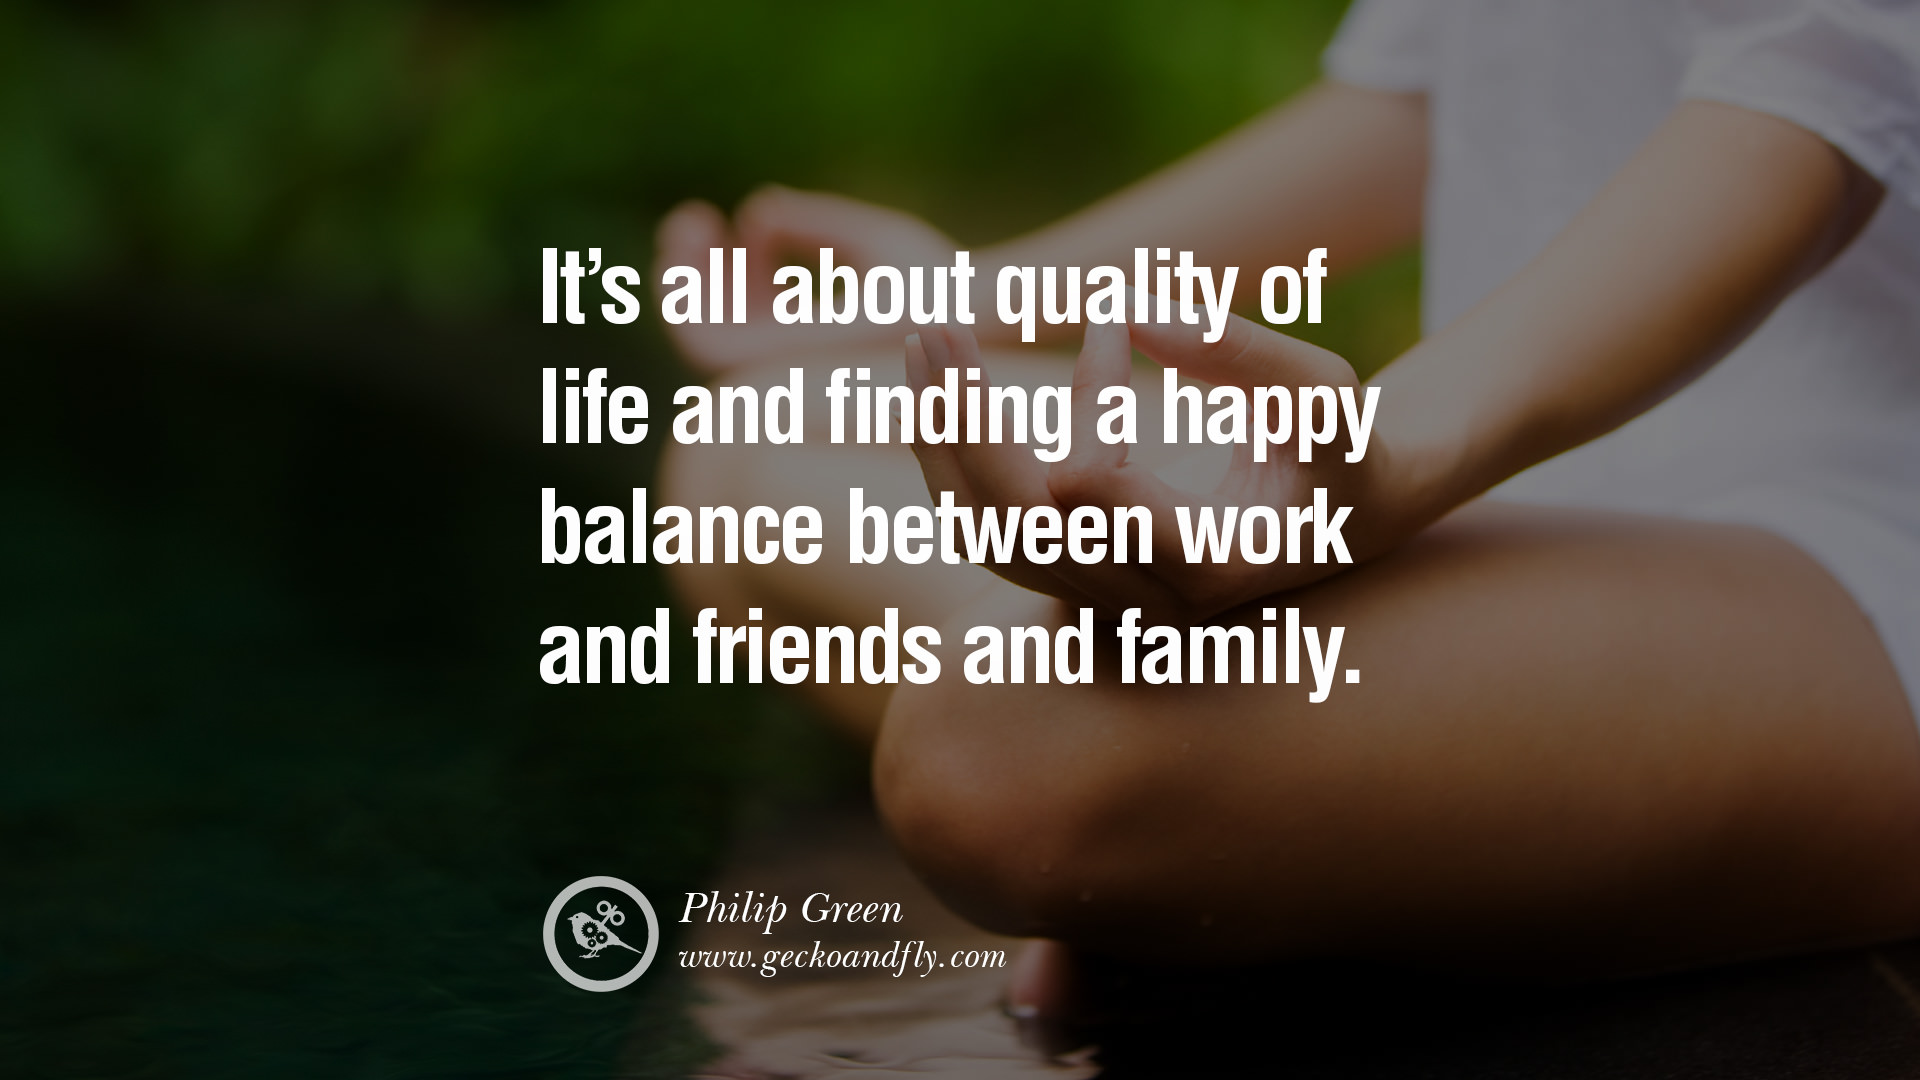 Life Messages And Quotes: Inspirational Quotes About Life Balance. QuotesGram